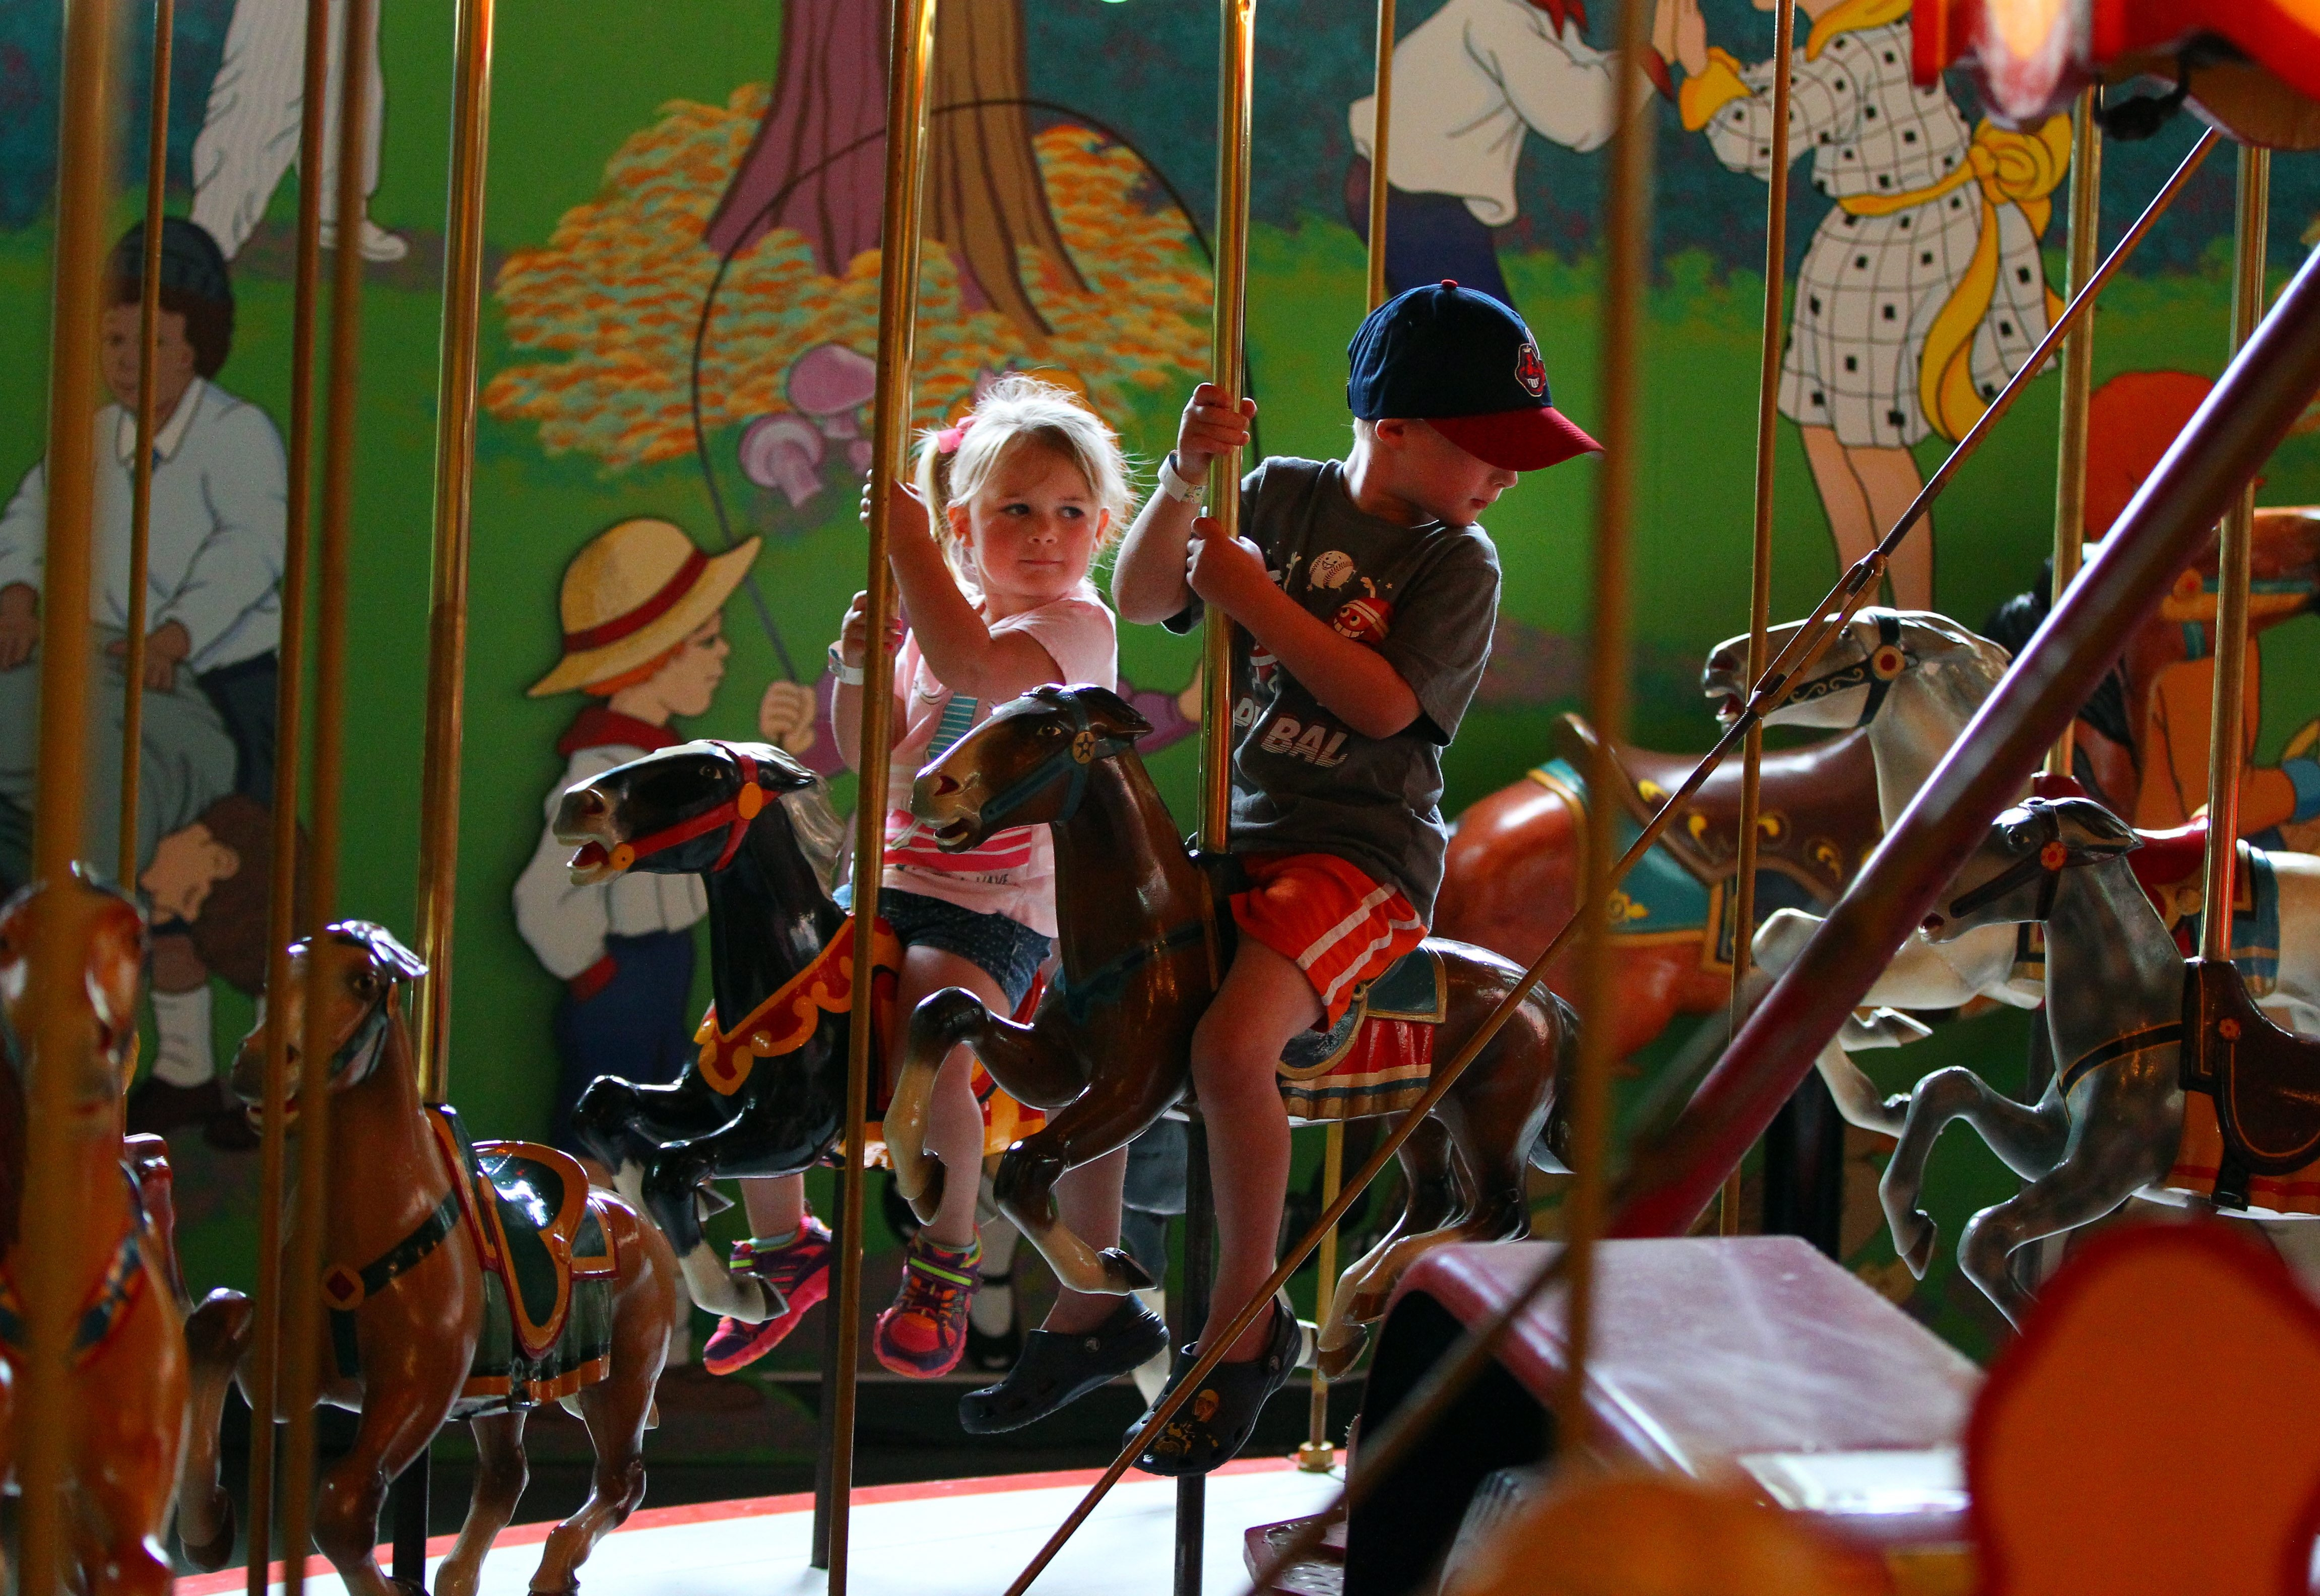 The Herschell Carrousel Factory Museum in North Tonawanda will celebrate its centennial from 10 a.m. to 4 p.m. Oct. 3. Earlier this year, Ella Thaine and her brother Carter took a ride on the museum's carousel.